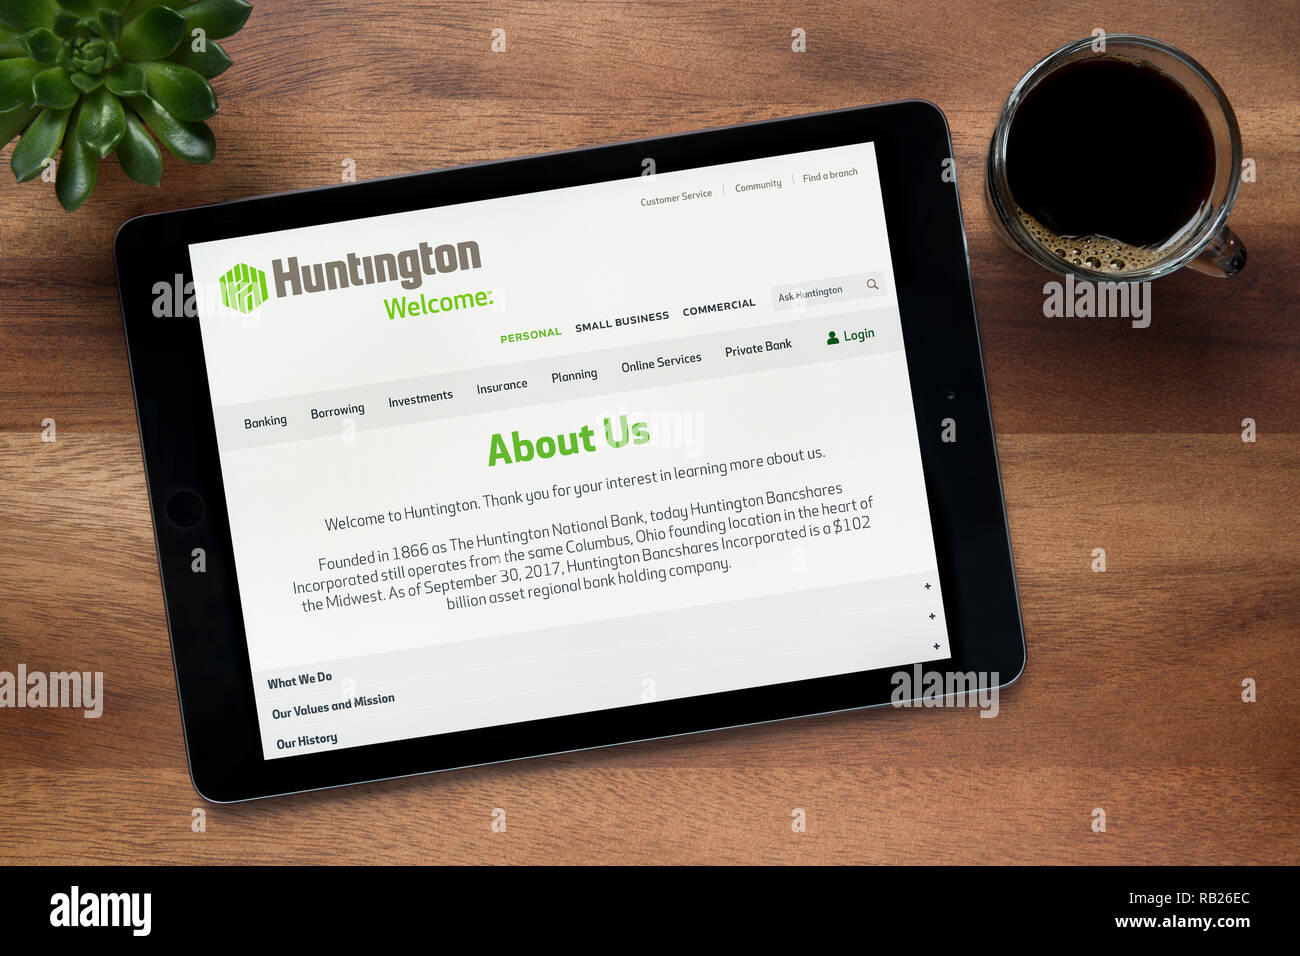 The website of Huntington bank is seen on an iPad tablet, on a wooden table along with an espresso coffee and a house plant (Editorial use only). - Stock Image